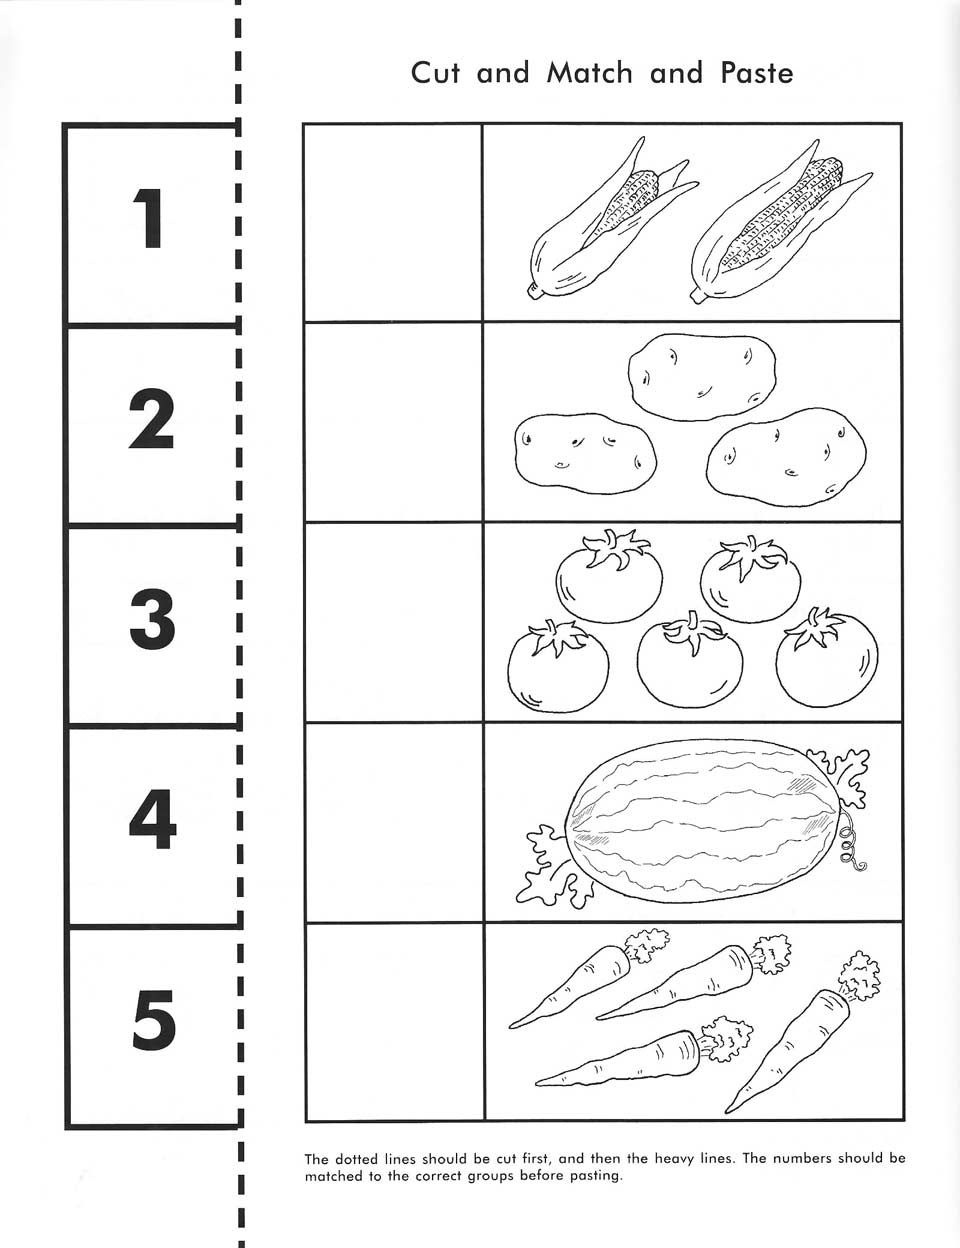 Cut, Count, Match And Paste / Free Printable | Pre-K Math - Free Pre K Math Printables